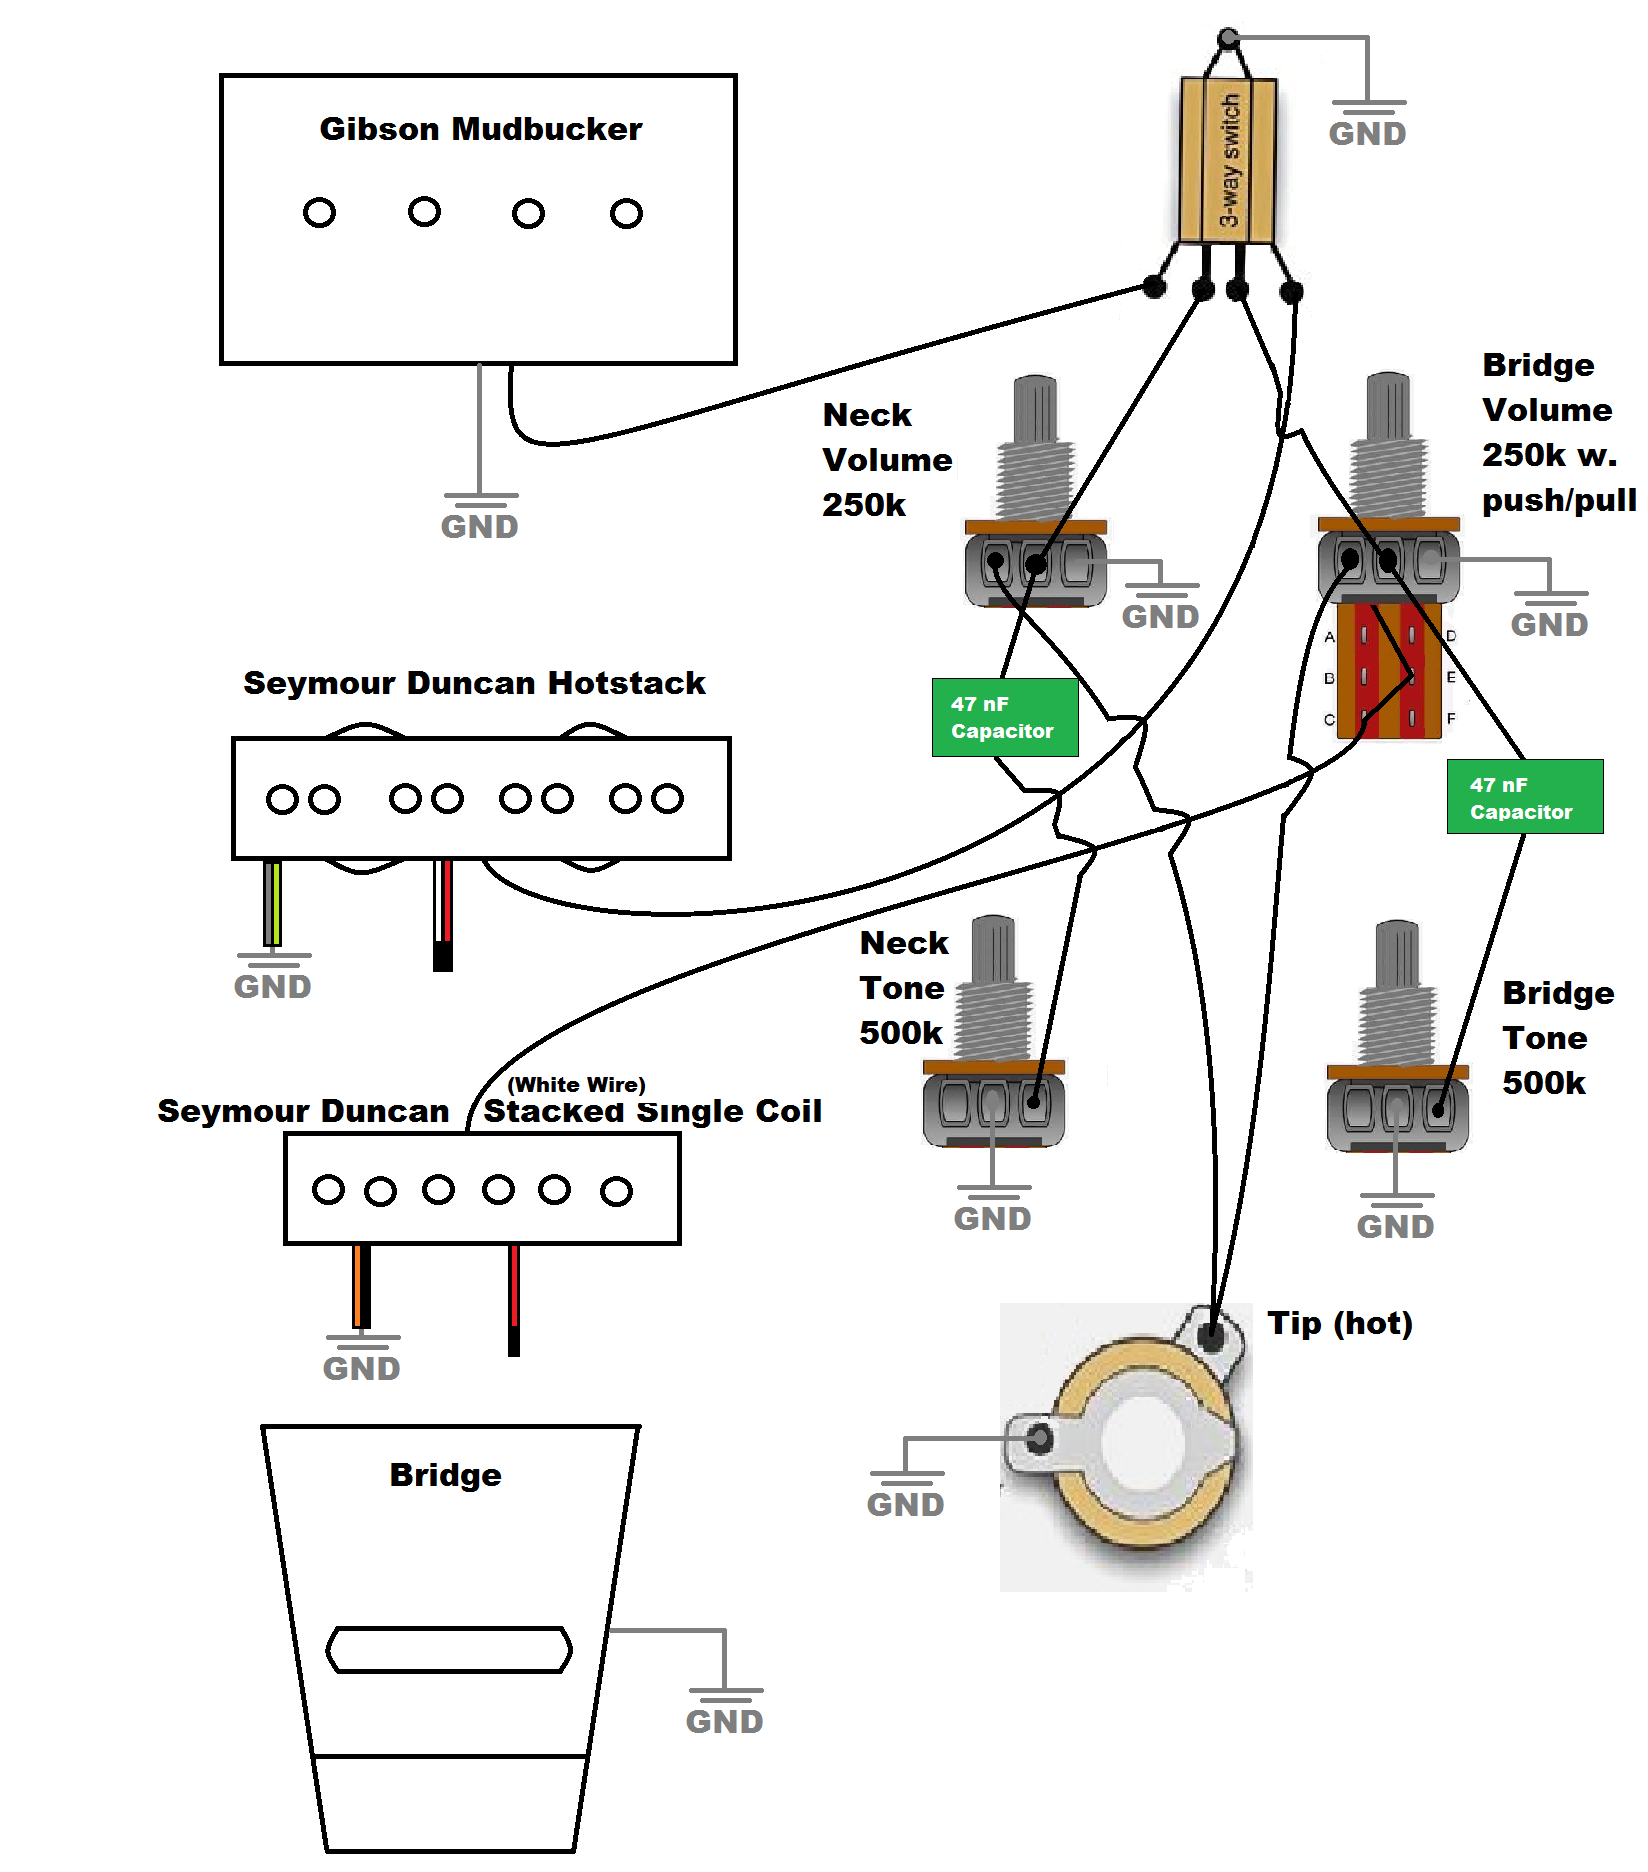 Rickenbacker Amp Schematic | Wiring Diagram